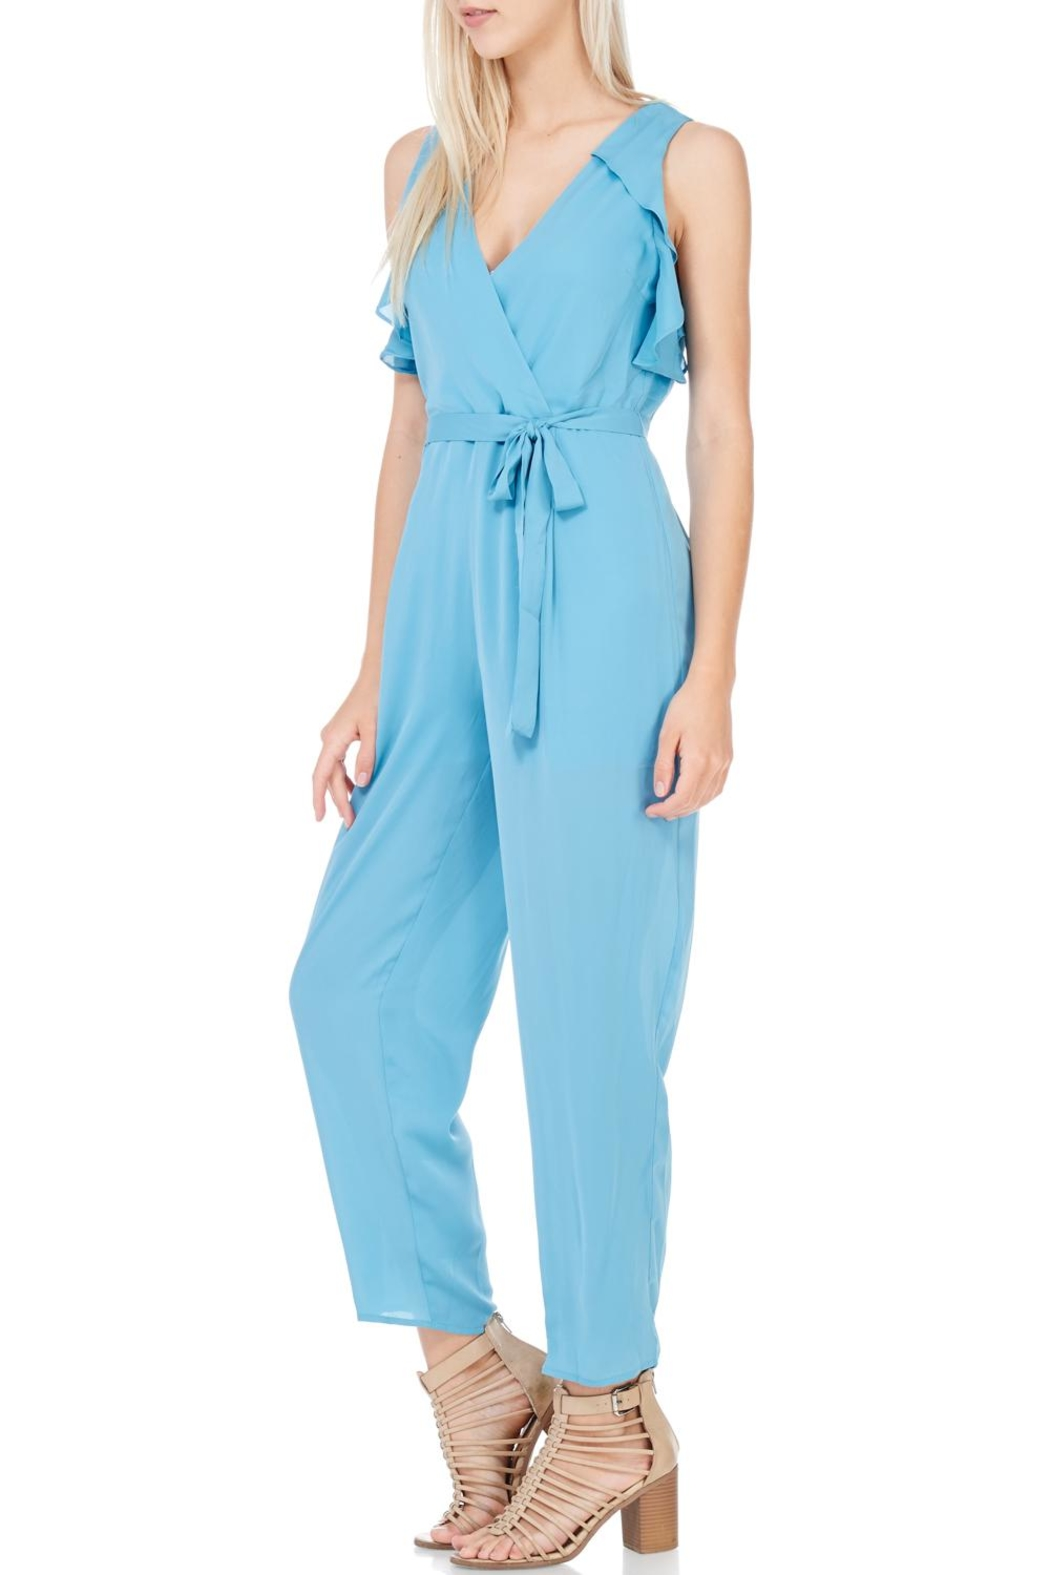 Everly Dusty Blue Lined Jumper - Front Full Image